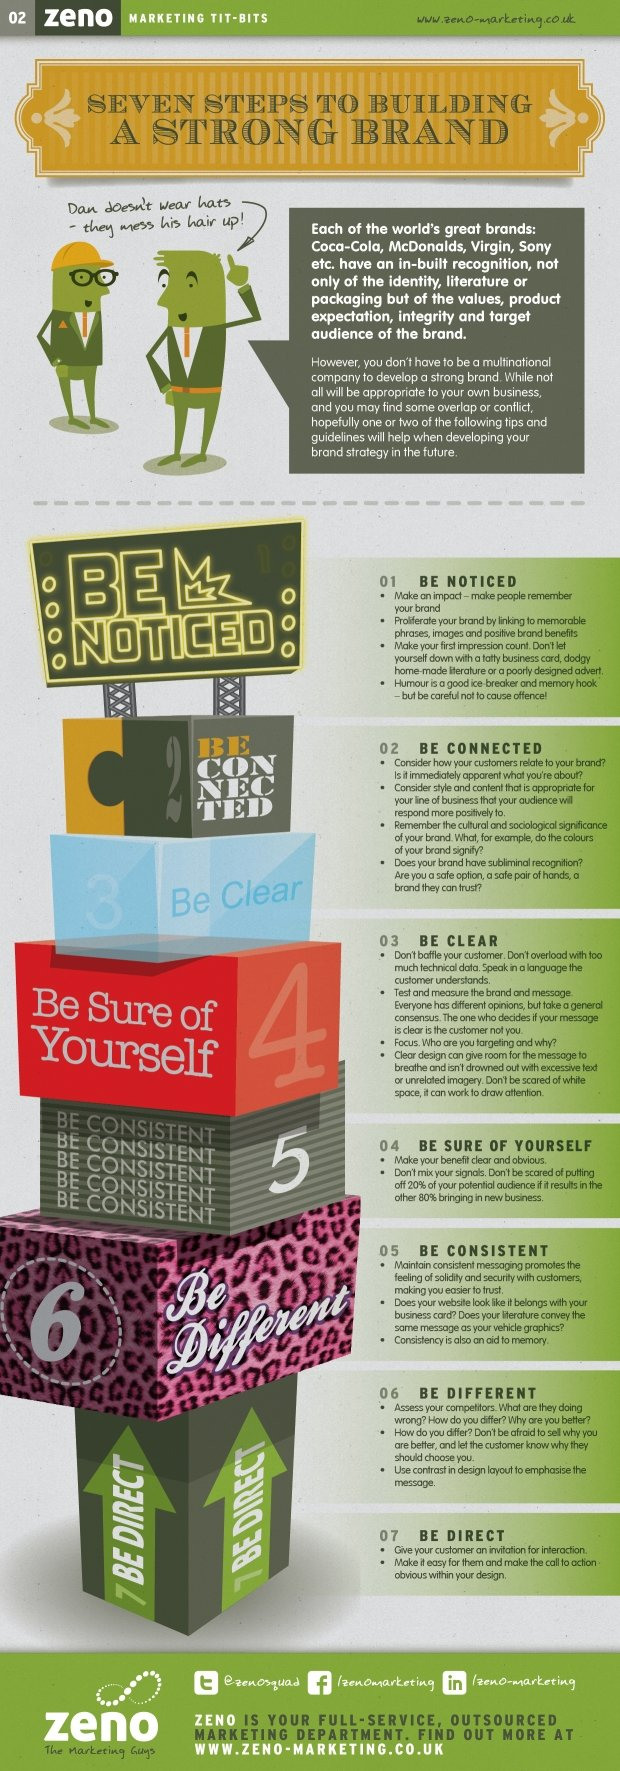 7 steps to bulding a strong brand #infographic